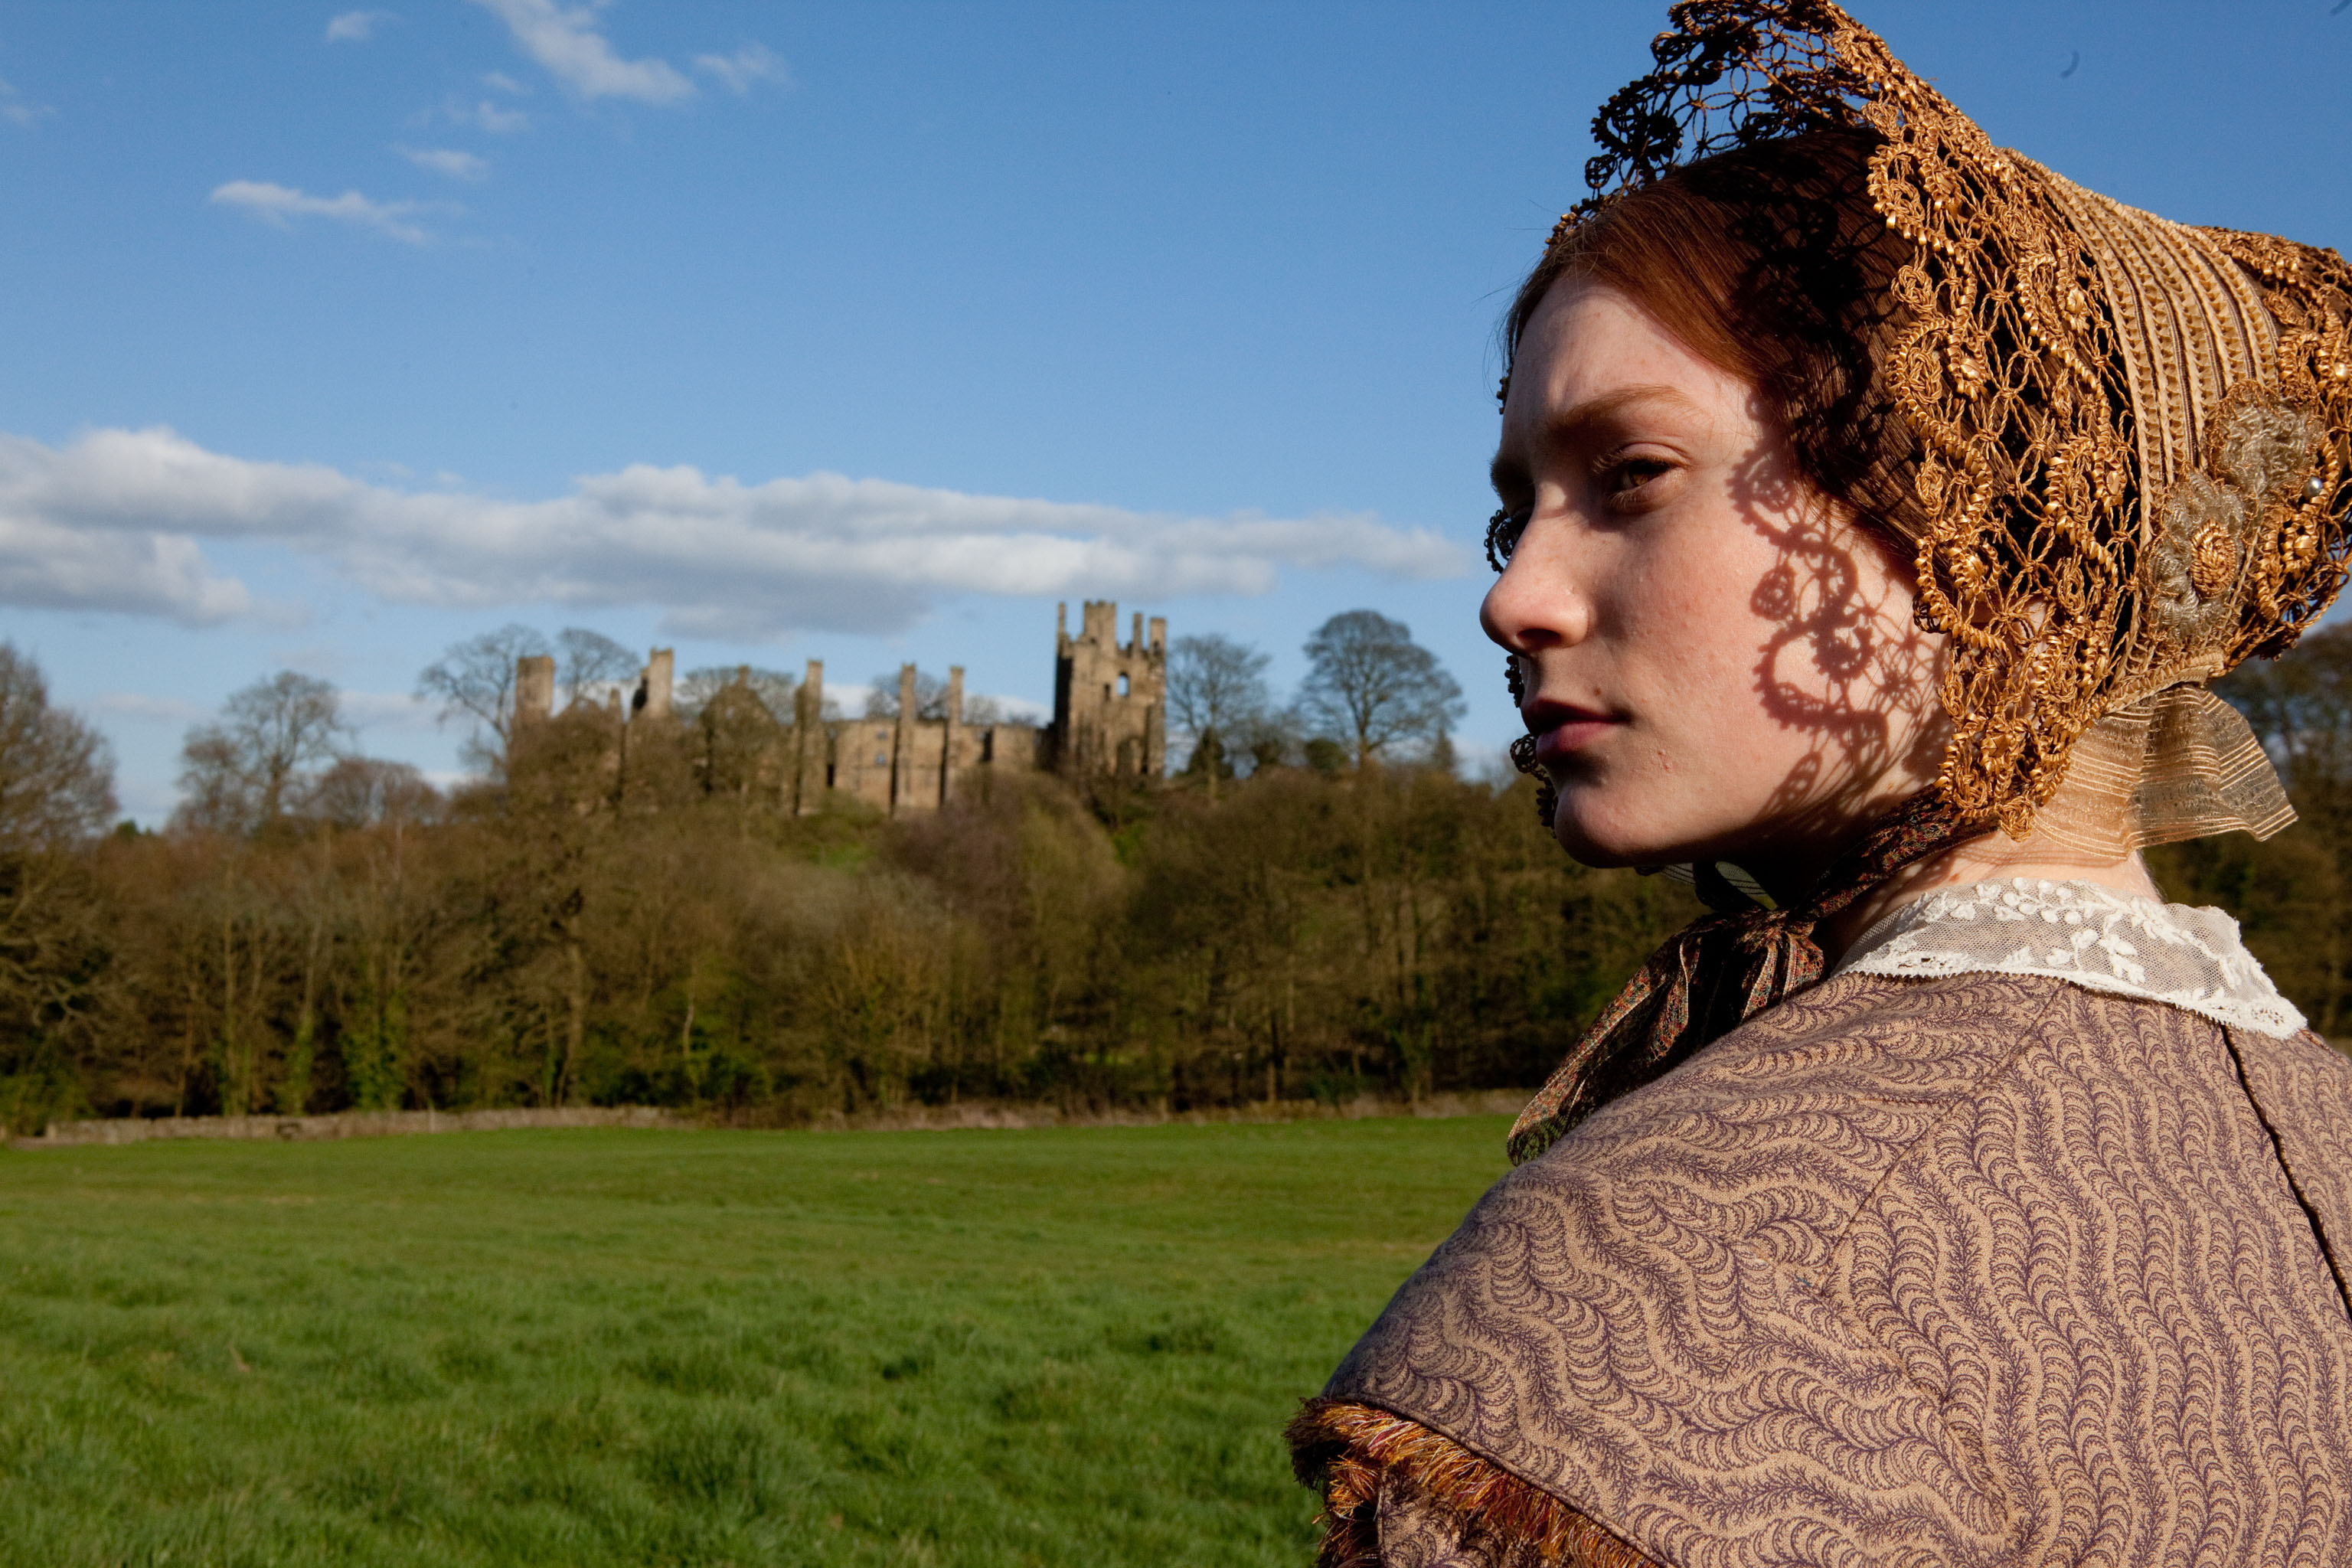 a comparison of focus films 2010 jane eyre and the book jane eyre by charlotte bronte